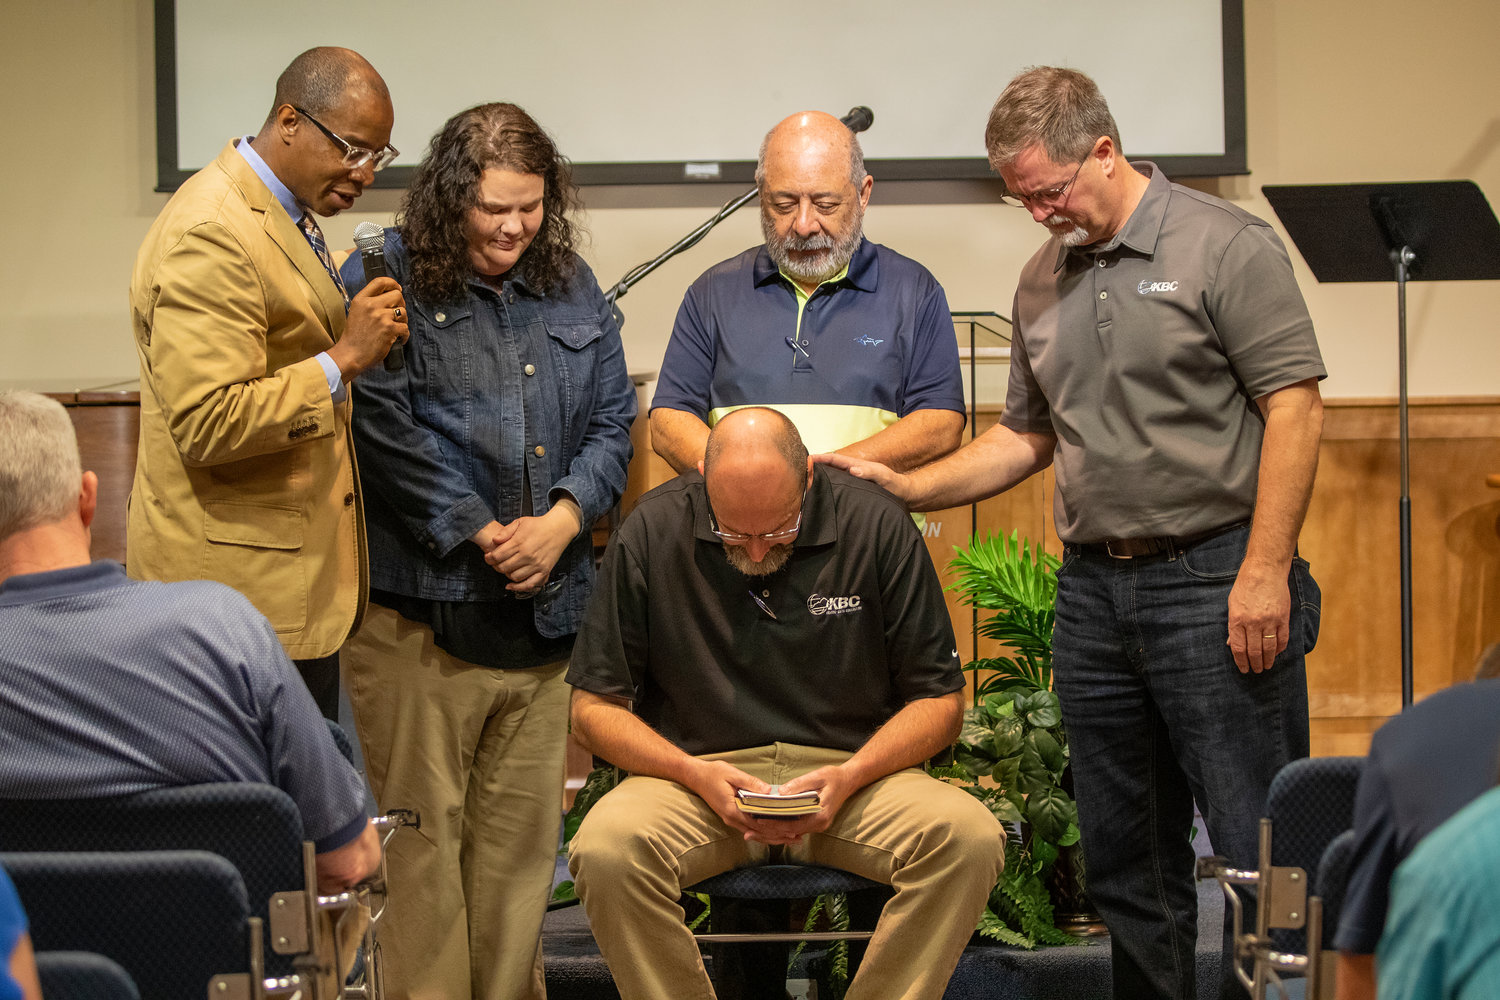 Kentucky Baptist Convention Co-interim Executive Director Curtis Woods (left) leads Mission Board staff in prayer after the announcement that Evangelism Team Leader Todd Gray (seated) was selected as the candidate to become the next executive director-treasurer.  Mission Board staff learned about Gray's selection via video from Search Committee Chairman Wes Fowler on Wednesday, July 17, 2019.  The KBC Mission Board will meet July 25 and vote on whether to confirm Gray. Also pictured are (second left) Evangelism Team Ministry Assistant DeAnna Terry, Church Planting Strategist Carlos De la Barra, and Church Evangelism Strategist Andy McDonald. (Kentucky Today/Robin Cornetet)